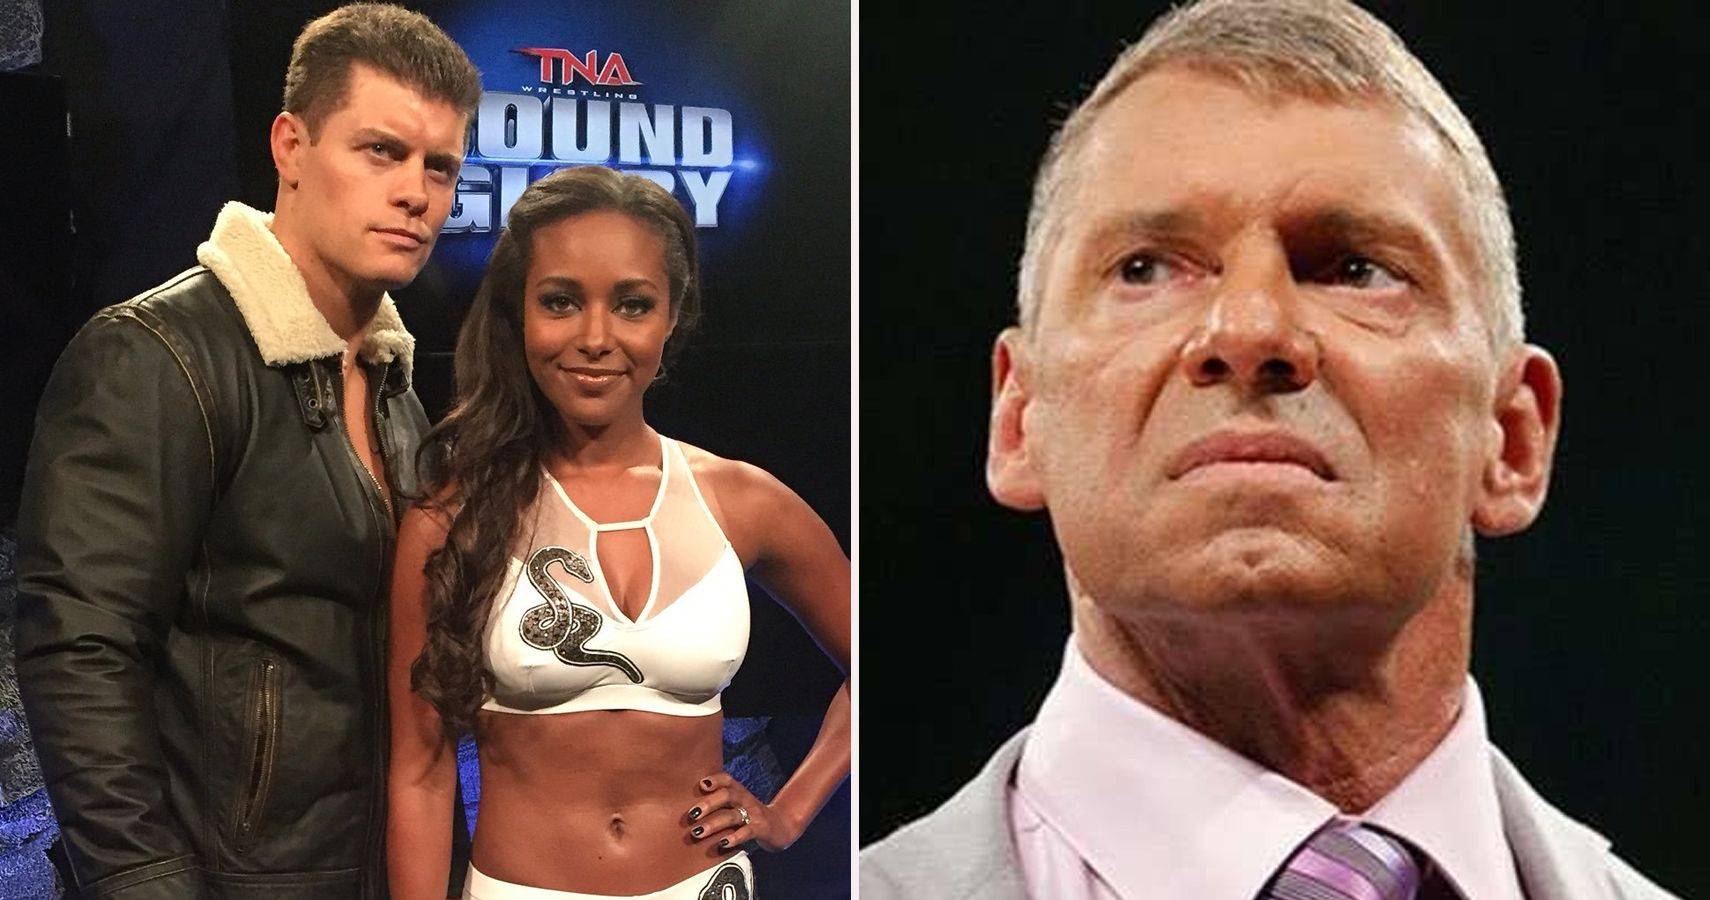 Wesley College Football >> Top 15 Things You Didn't Know About Cody Rhodes And Brandi